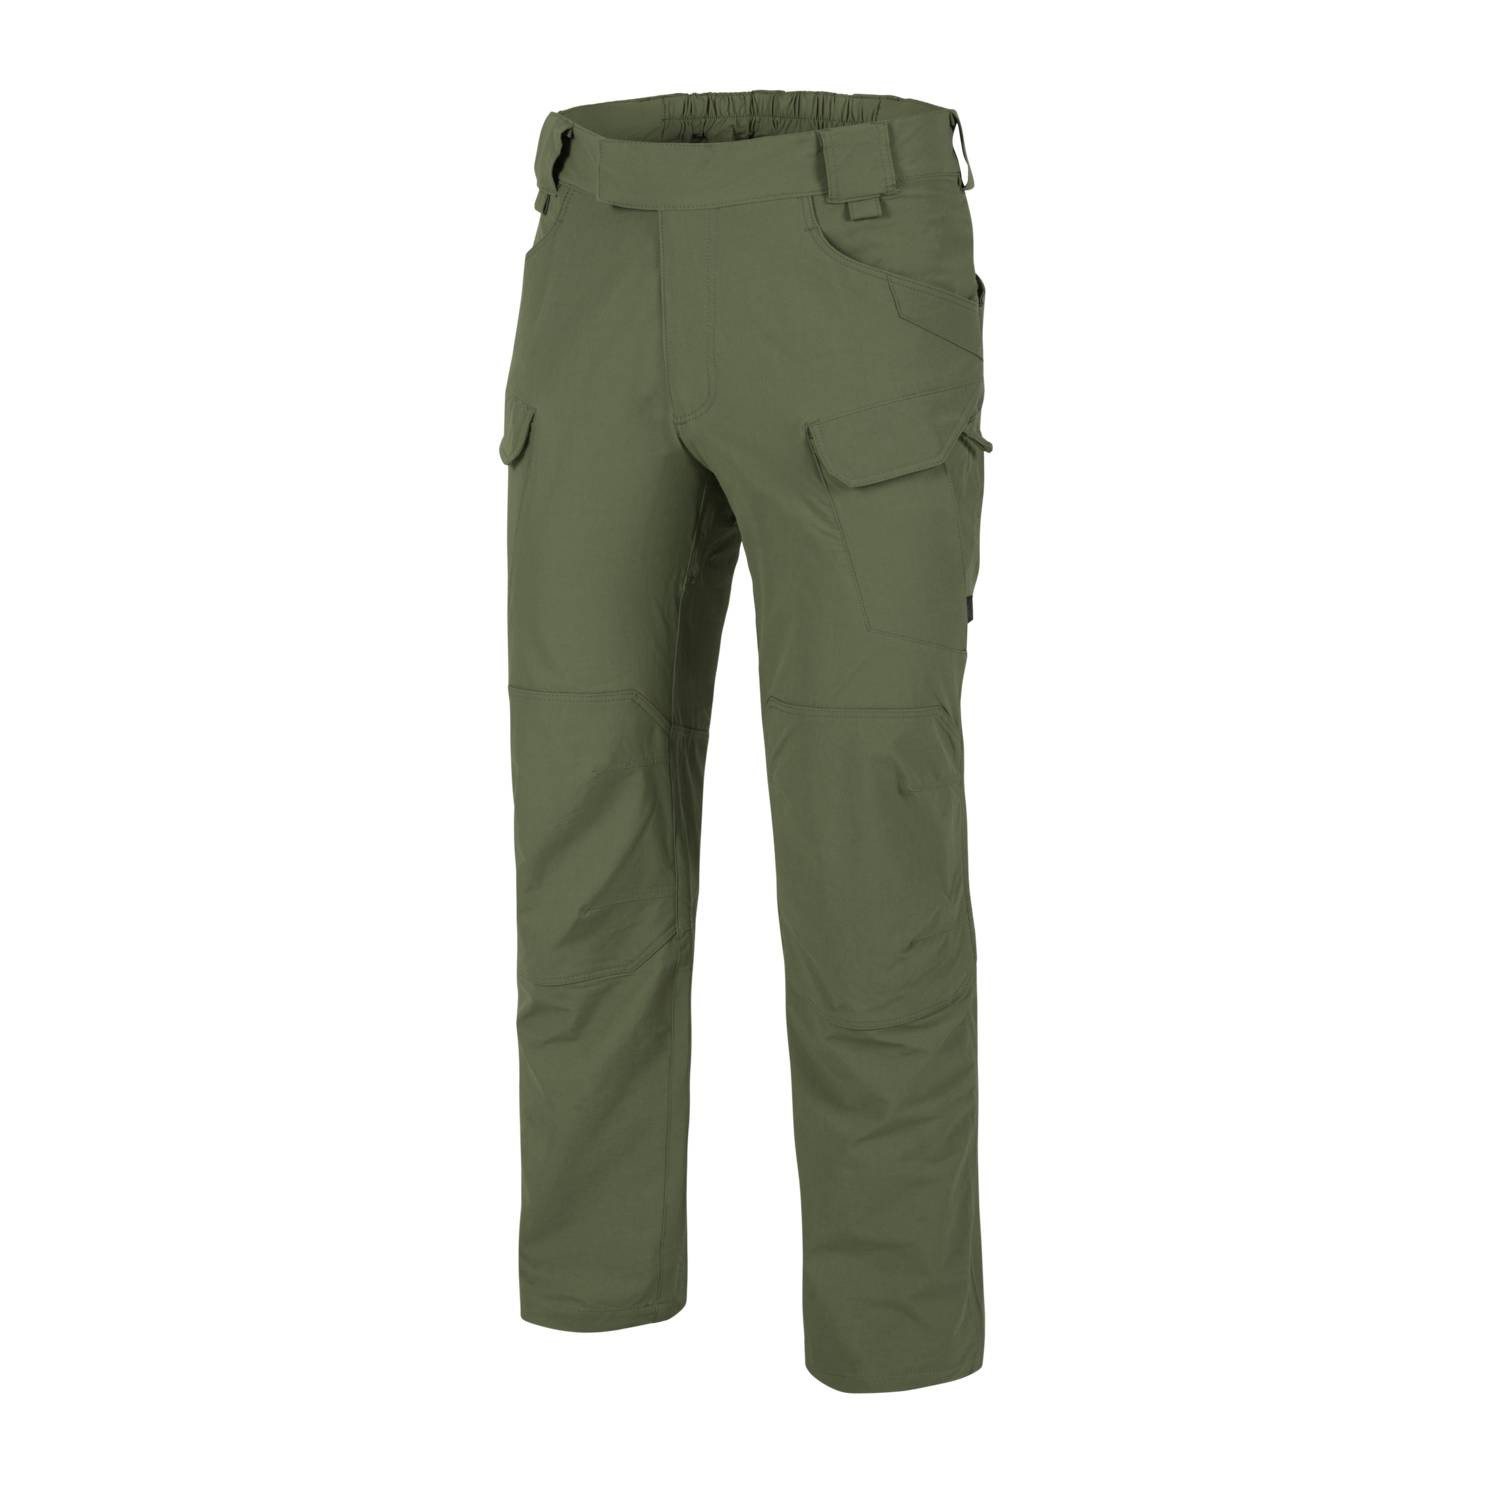 [2020NEW] Special Waterproof Pants For Outdoor Adventure, Hunting And Mountaineering - Buy Two Free Shipping